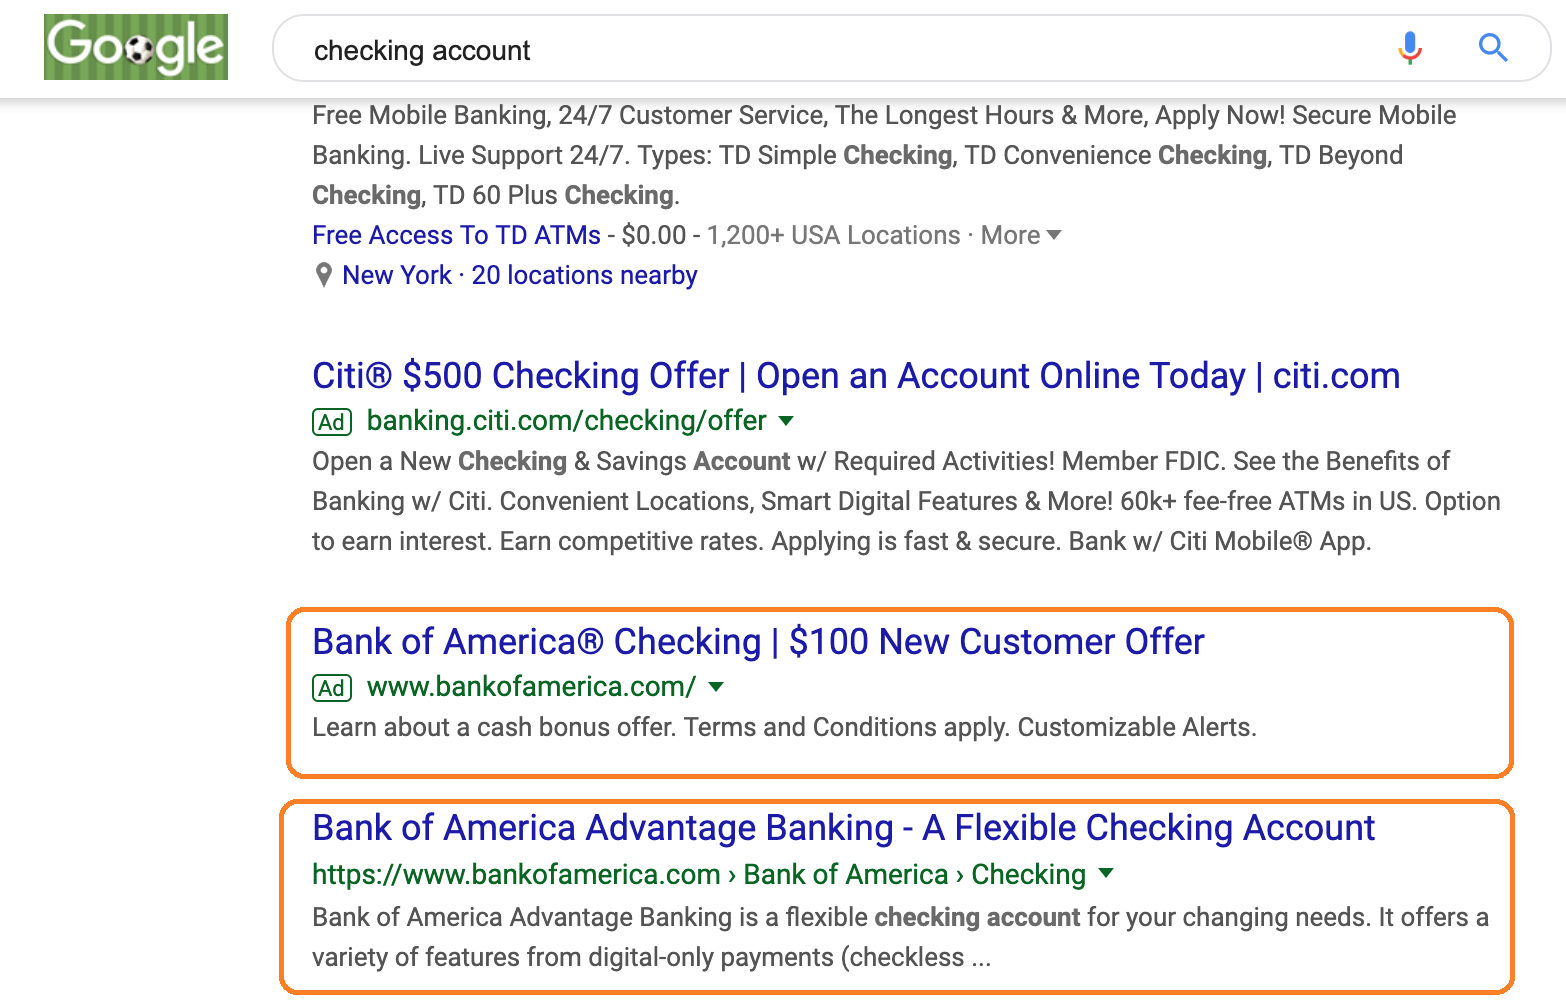 Holistic Search - Enterprise SEO strategy - Checking Account example